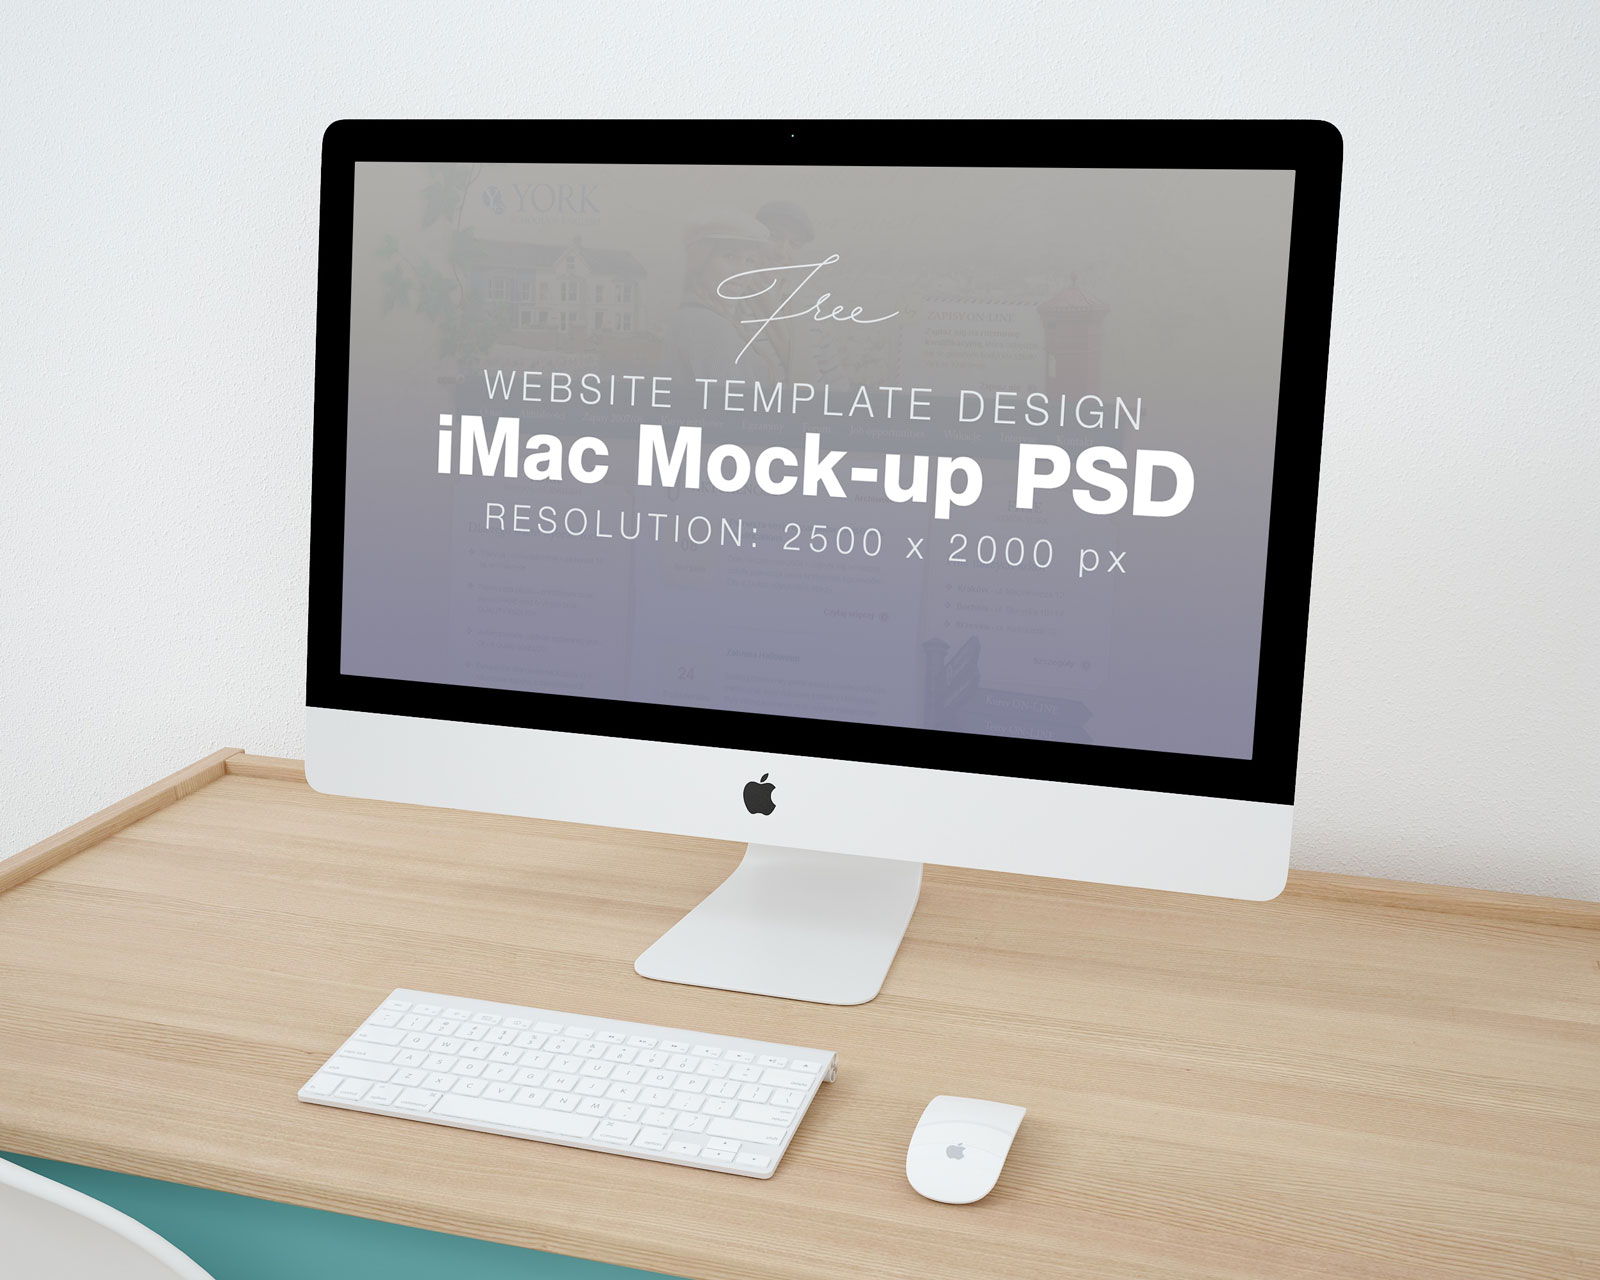 Free-Website-Design-iMac-Mock-up-PSD-File